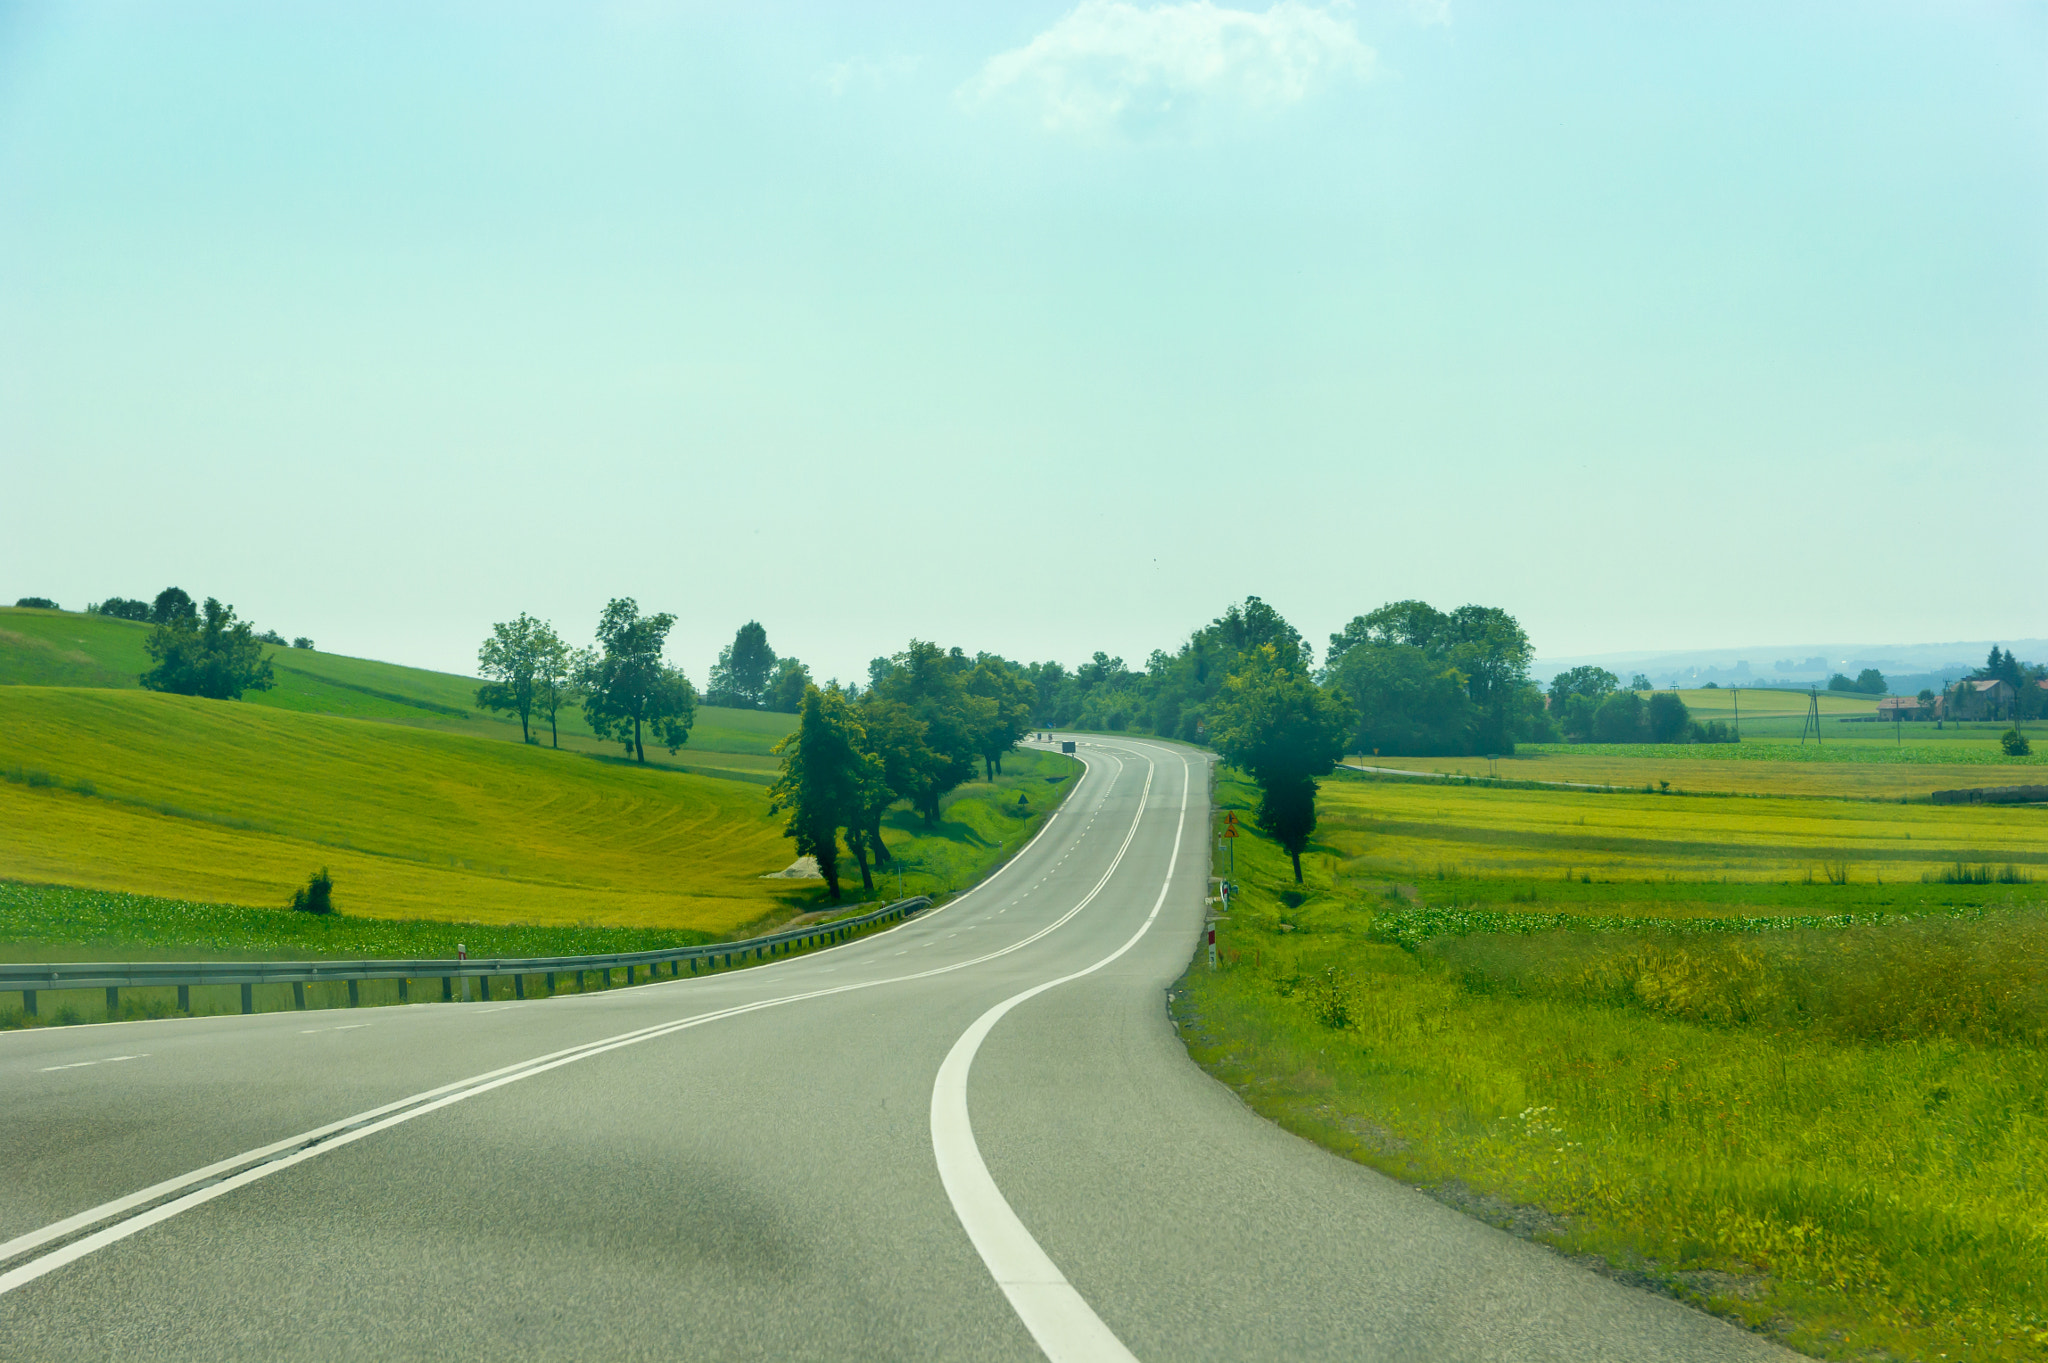 Photograph The road by Evgeny Sokolov on 500px